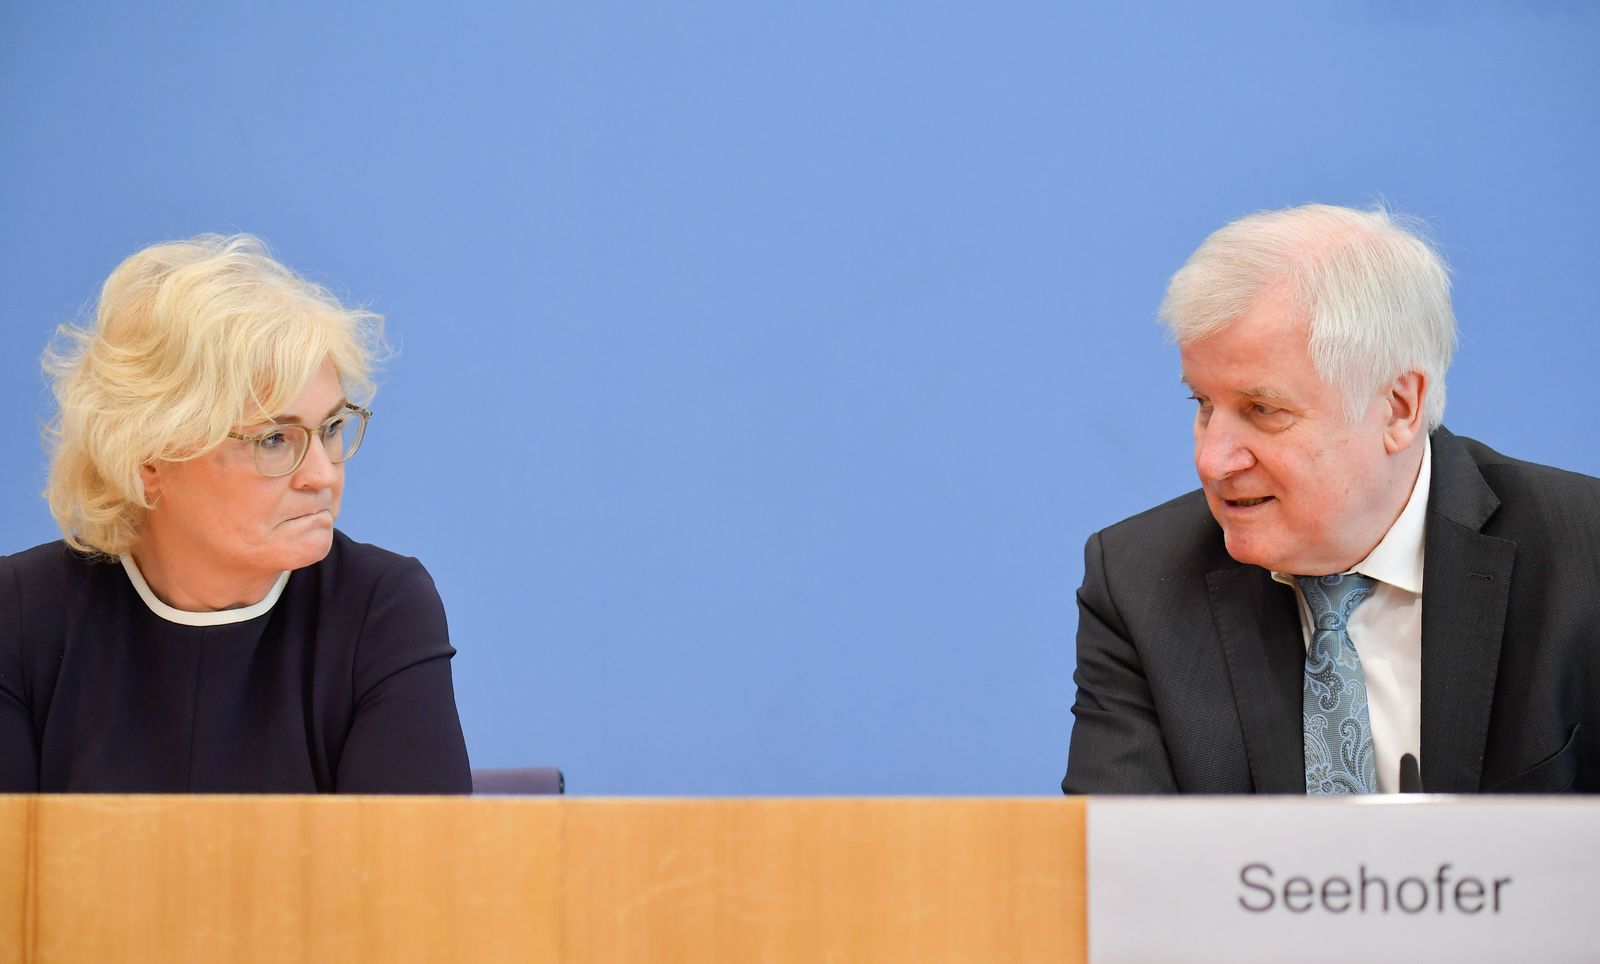 GERMANY-POLITICS-GOVERNMENT-SECURITY-EXTREMISM